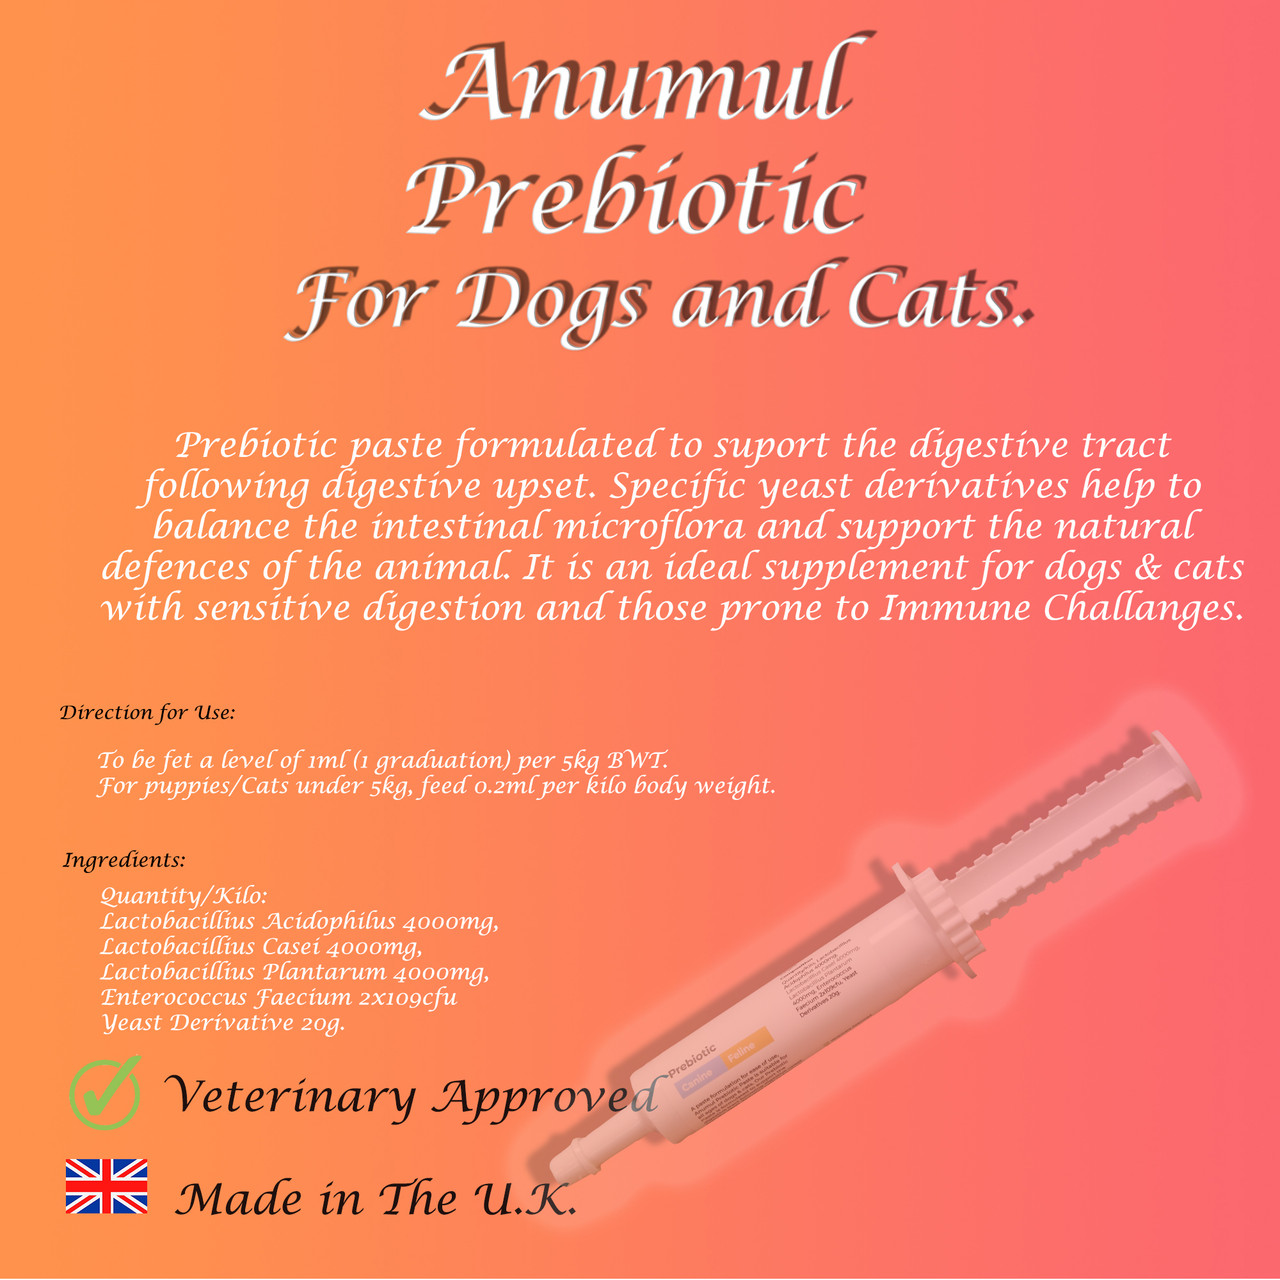 Anumul Prebiotic Paste Supports Upset Digestive Tract for Cats & Dogs